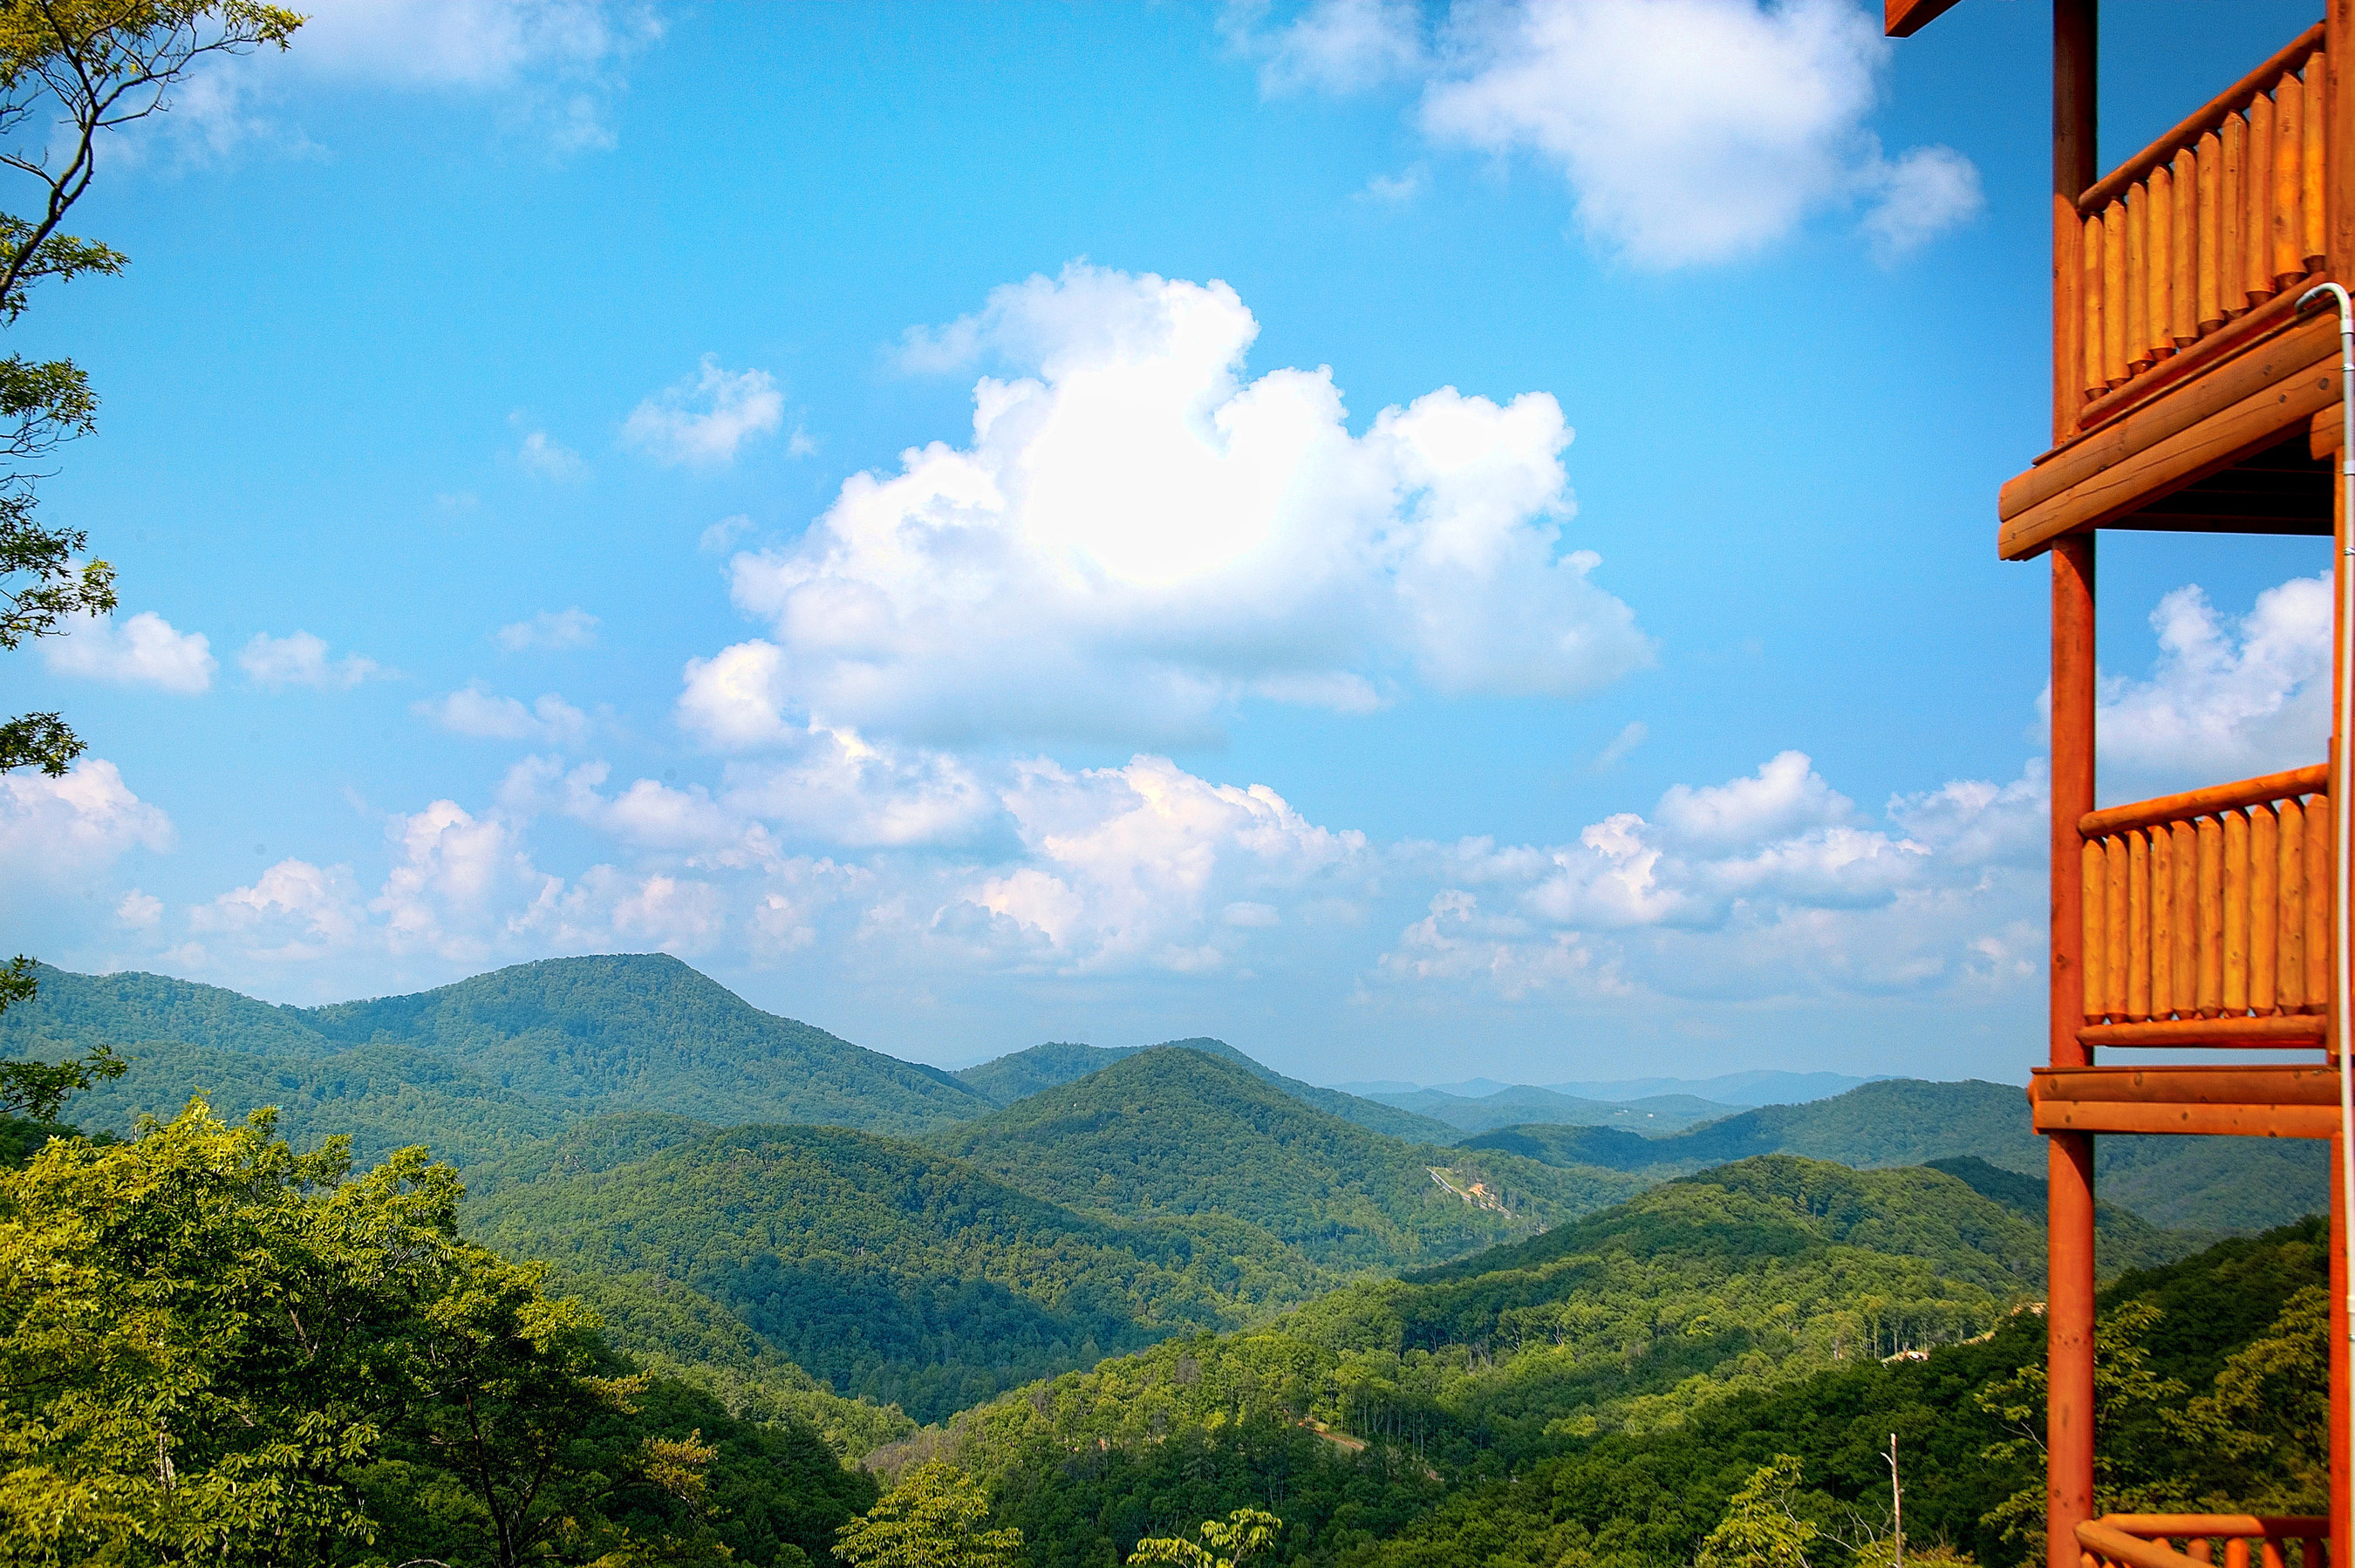 Take in some of the best mountain views with up to 35 percent off* Wyndham Vacation Rentals cabin rentals in the Smokies.